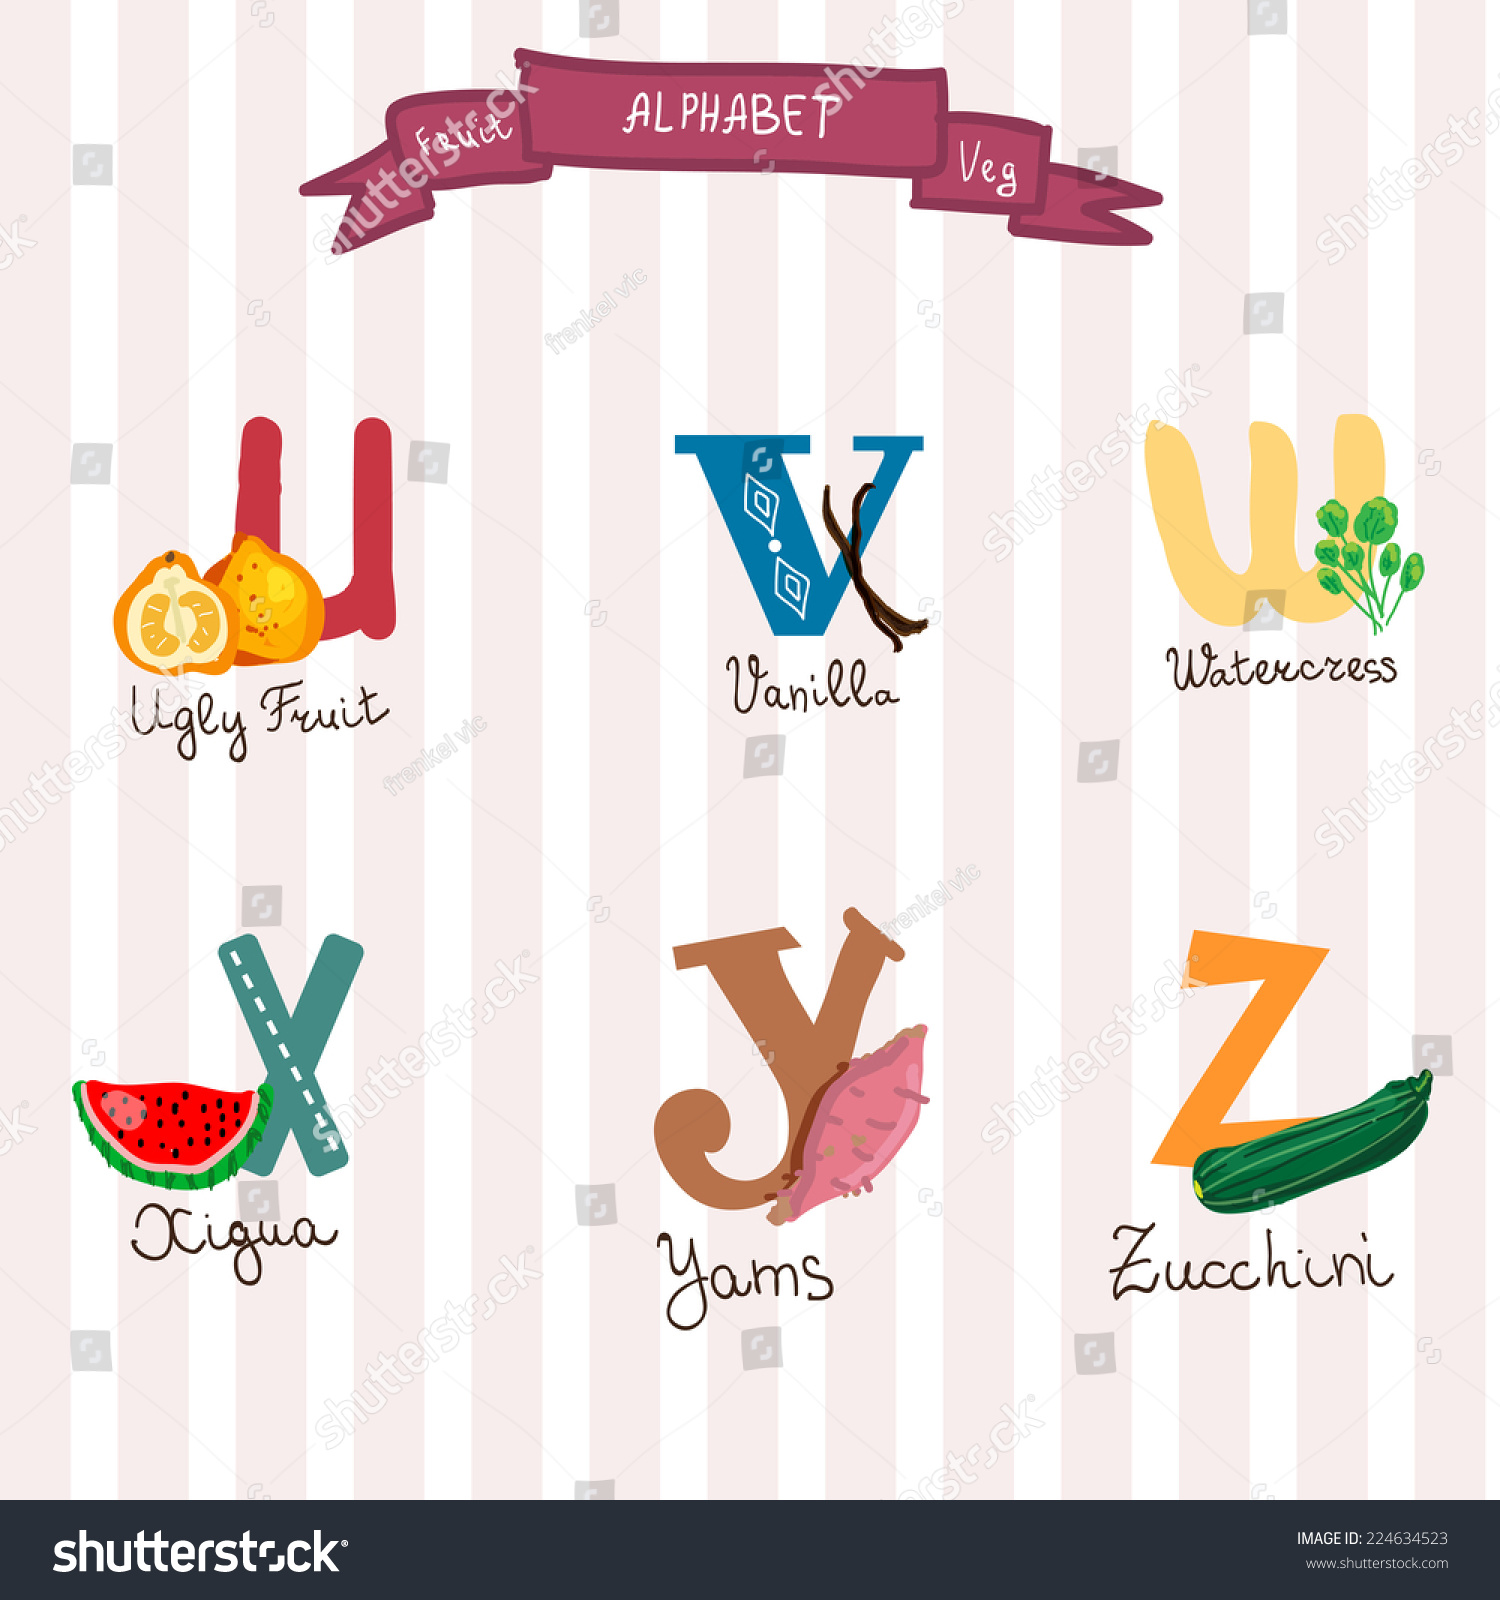 Plants Starting With The Letter V